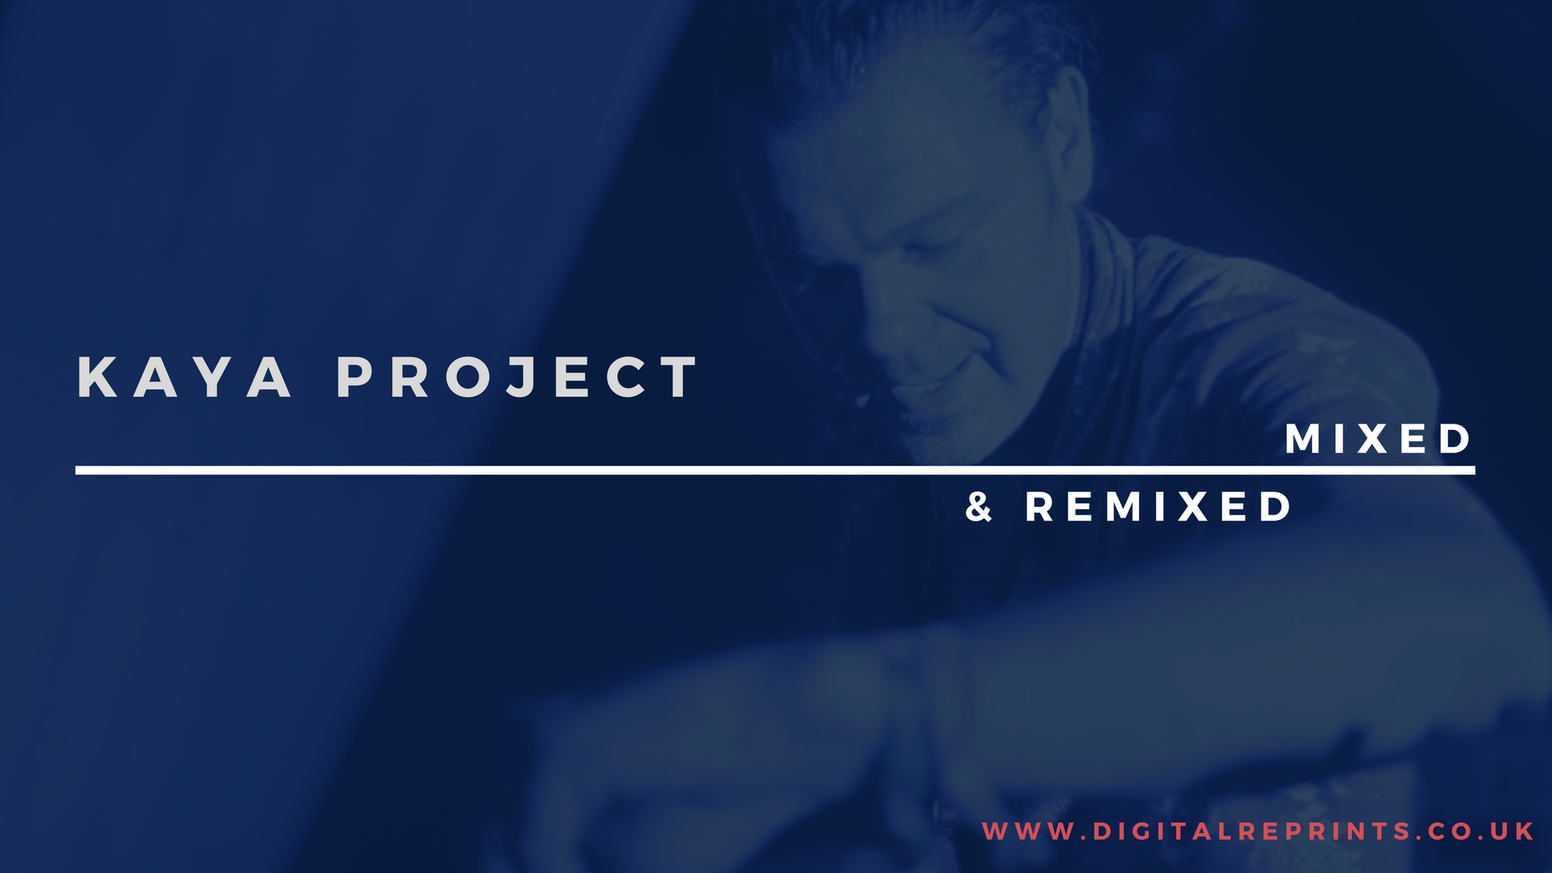 The remixed albums of Kaya Project that were previously available only online will be printed for the first time on a 5xCD box set.